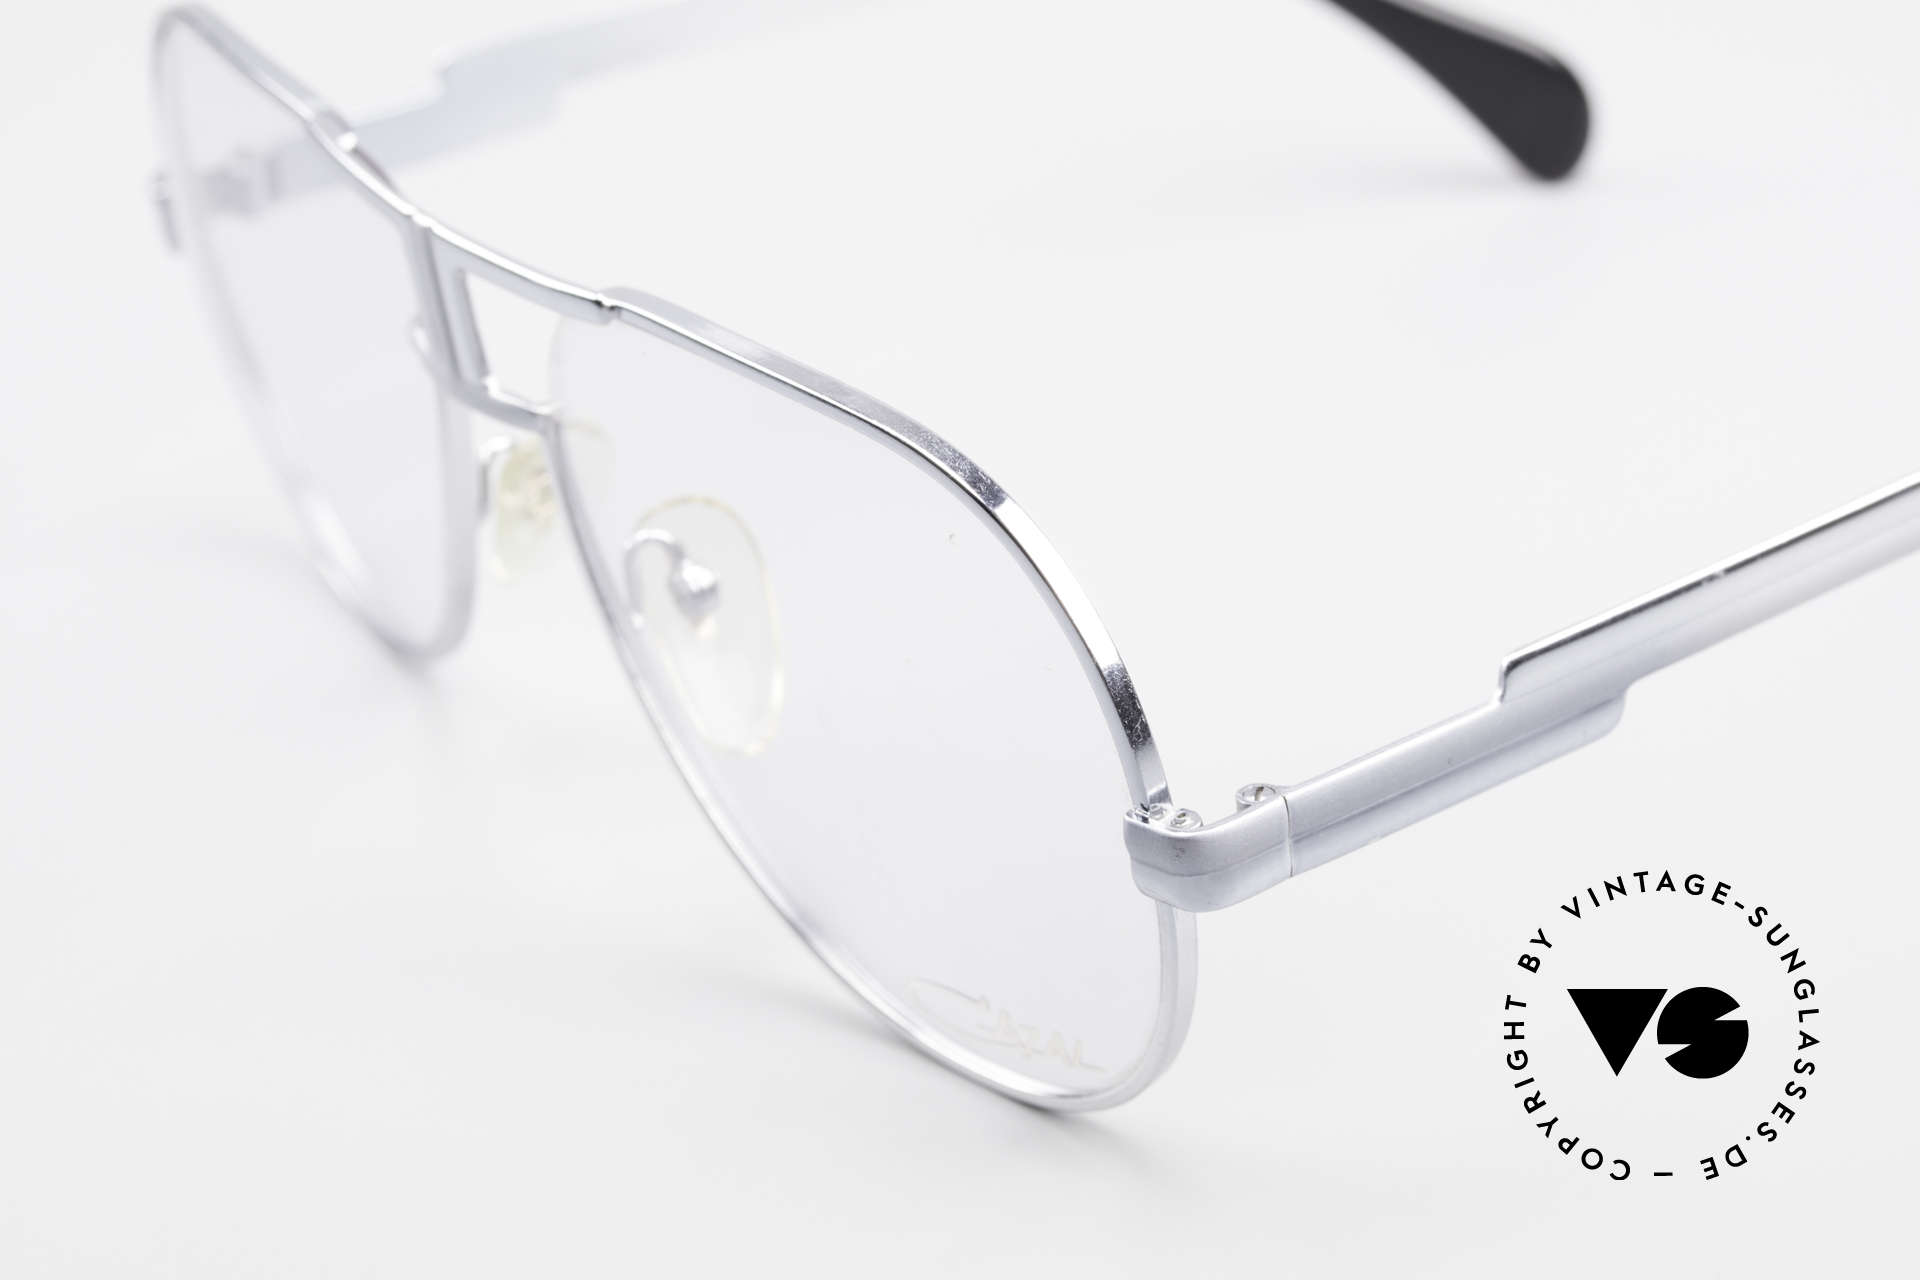 Cazal 702 Ultra Rare 70's Cazal Glasses, seamless change from gray to silver; simply unique, Made for Men